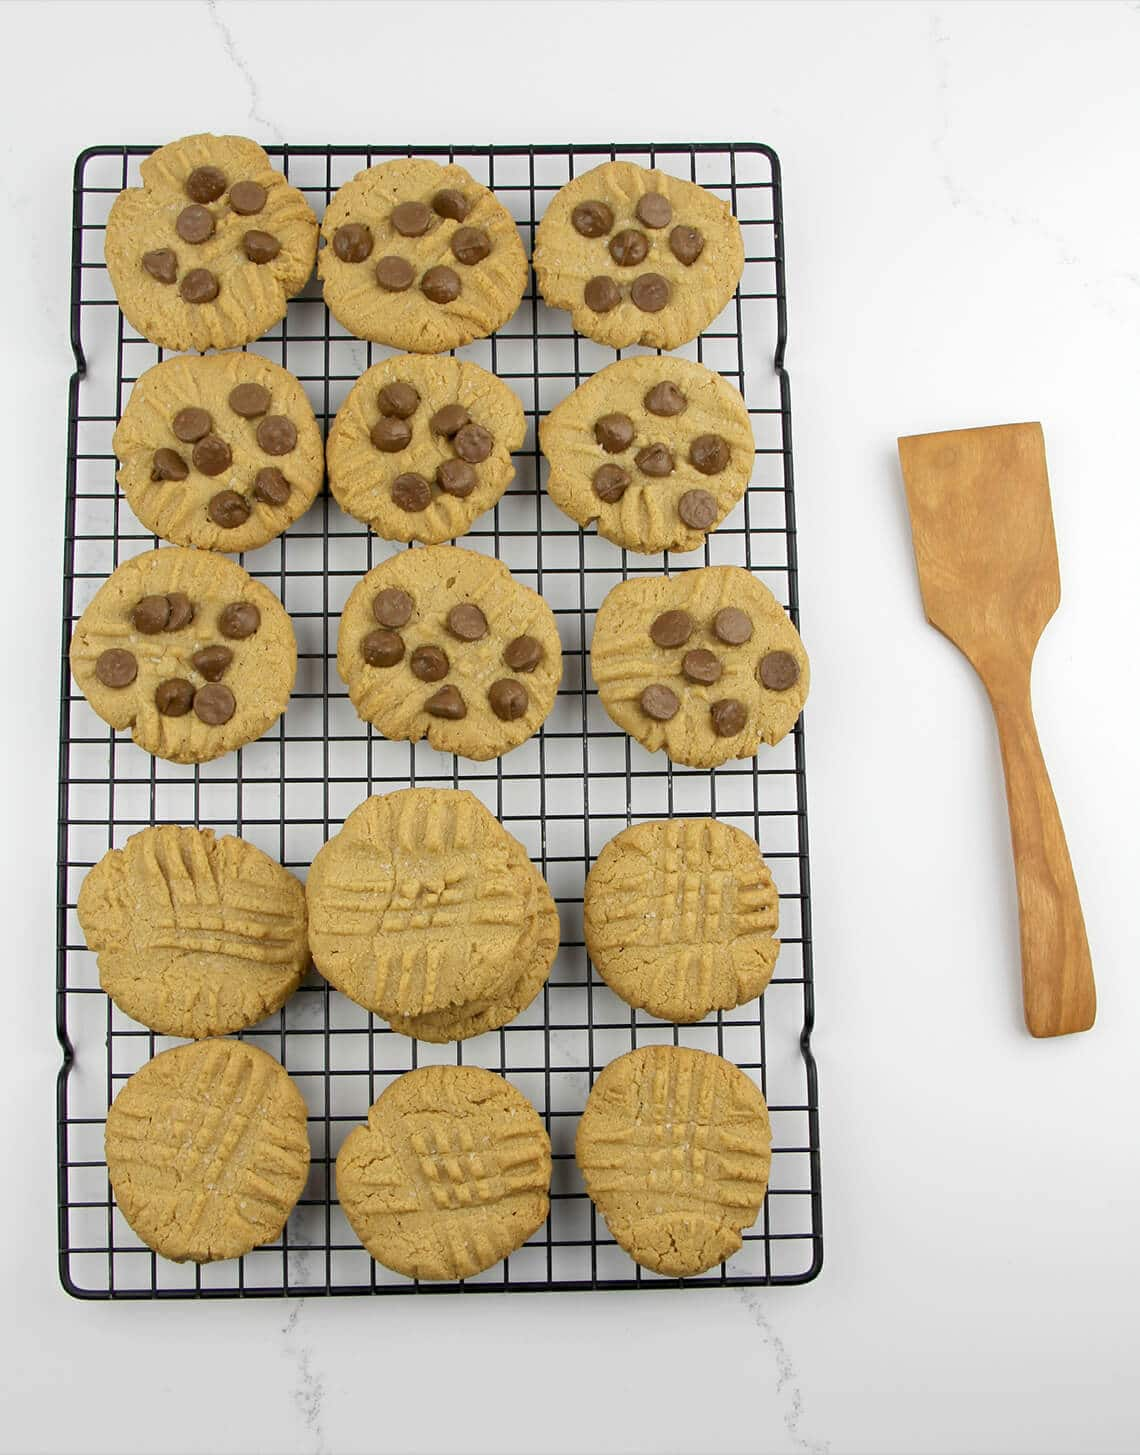 Three Ingredient Peanut Butter Cookies, also known as flourless peanut butter cookies, are gluten-free, dairy-free, and really tasty!